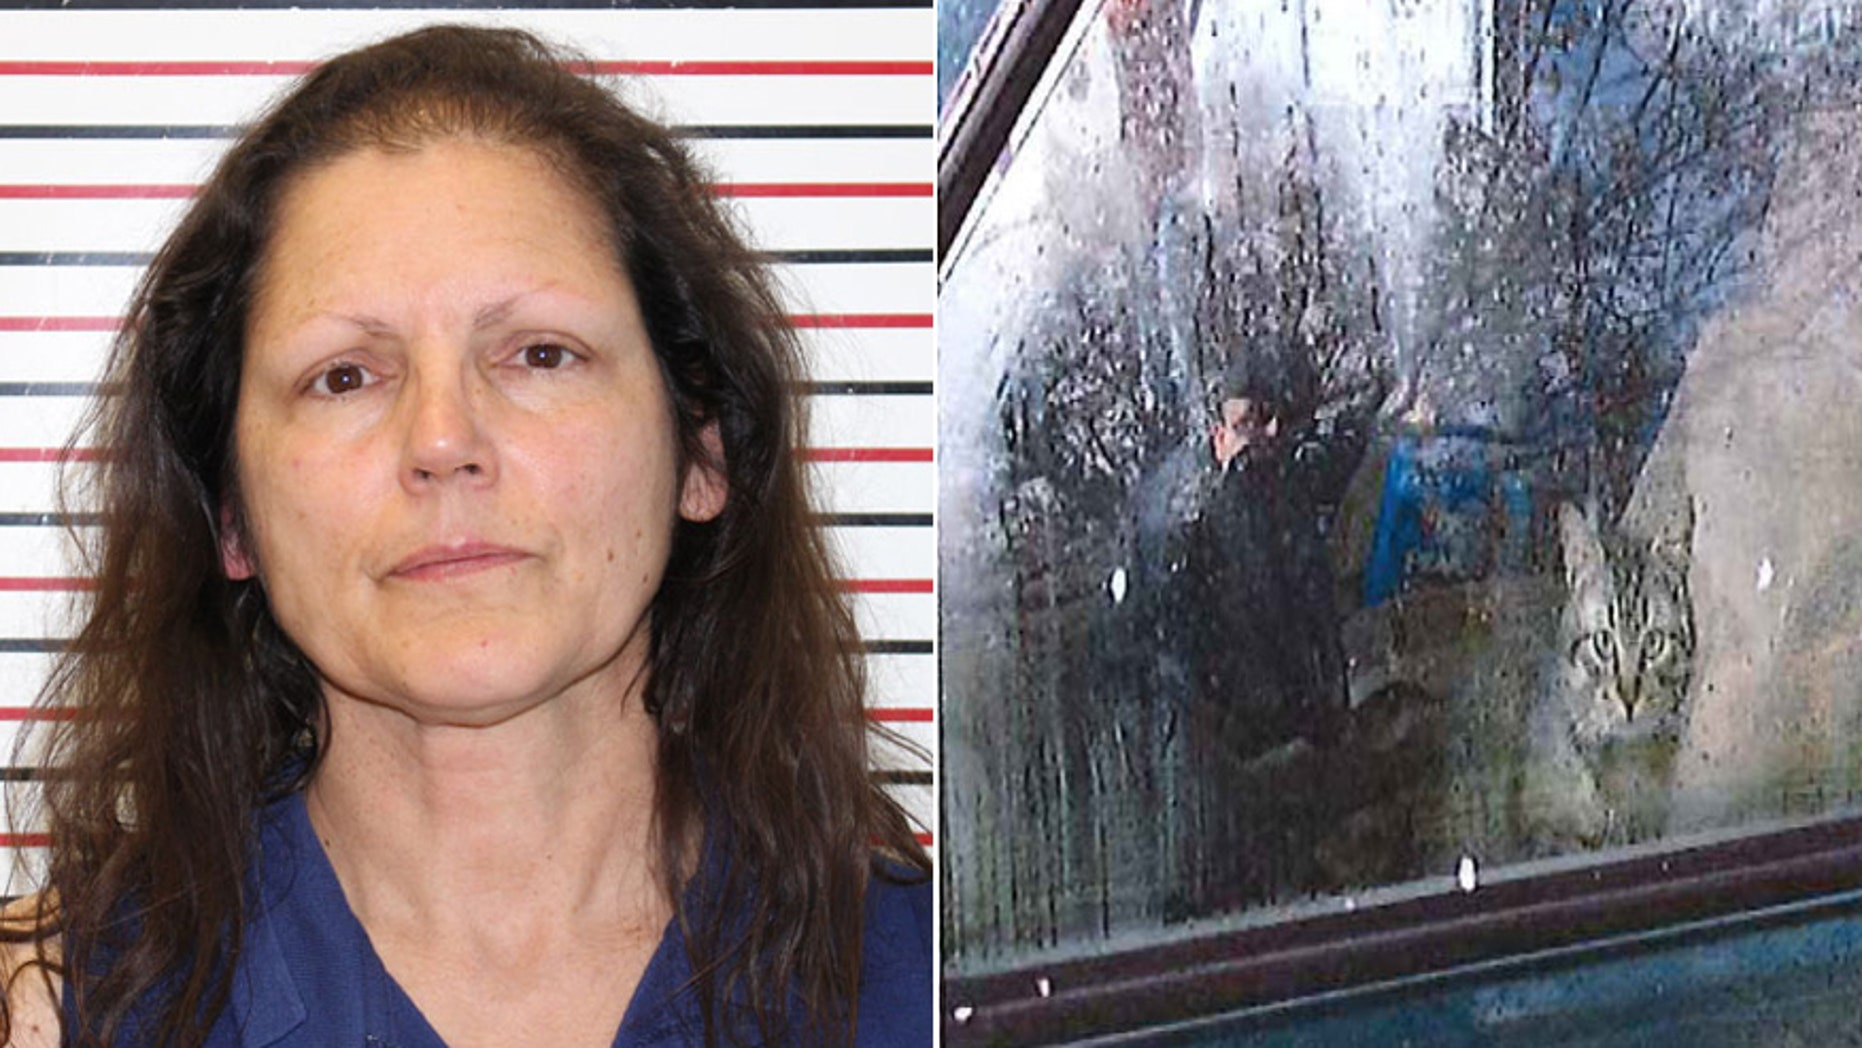 Police say 42 cats were found in Kathryn St. Clare's car Monday when she was arrested in Warrenton, Wash.